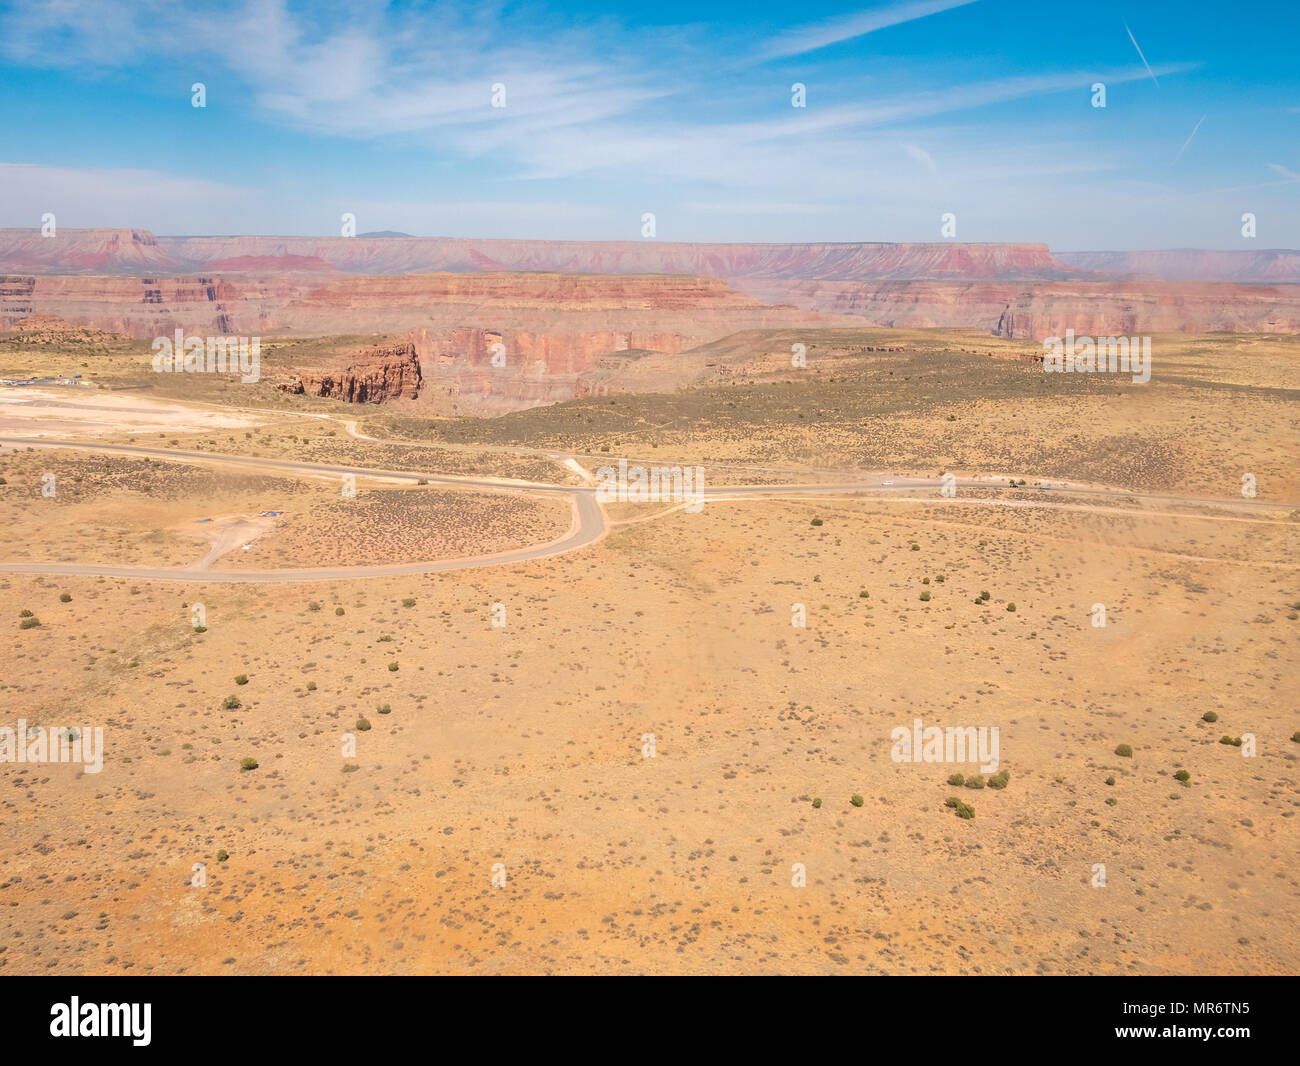 Helicopter View of Country Roads at the Edge of the Grand Canyon - Stock Image